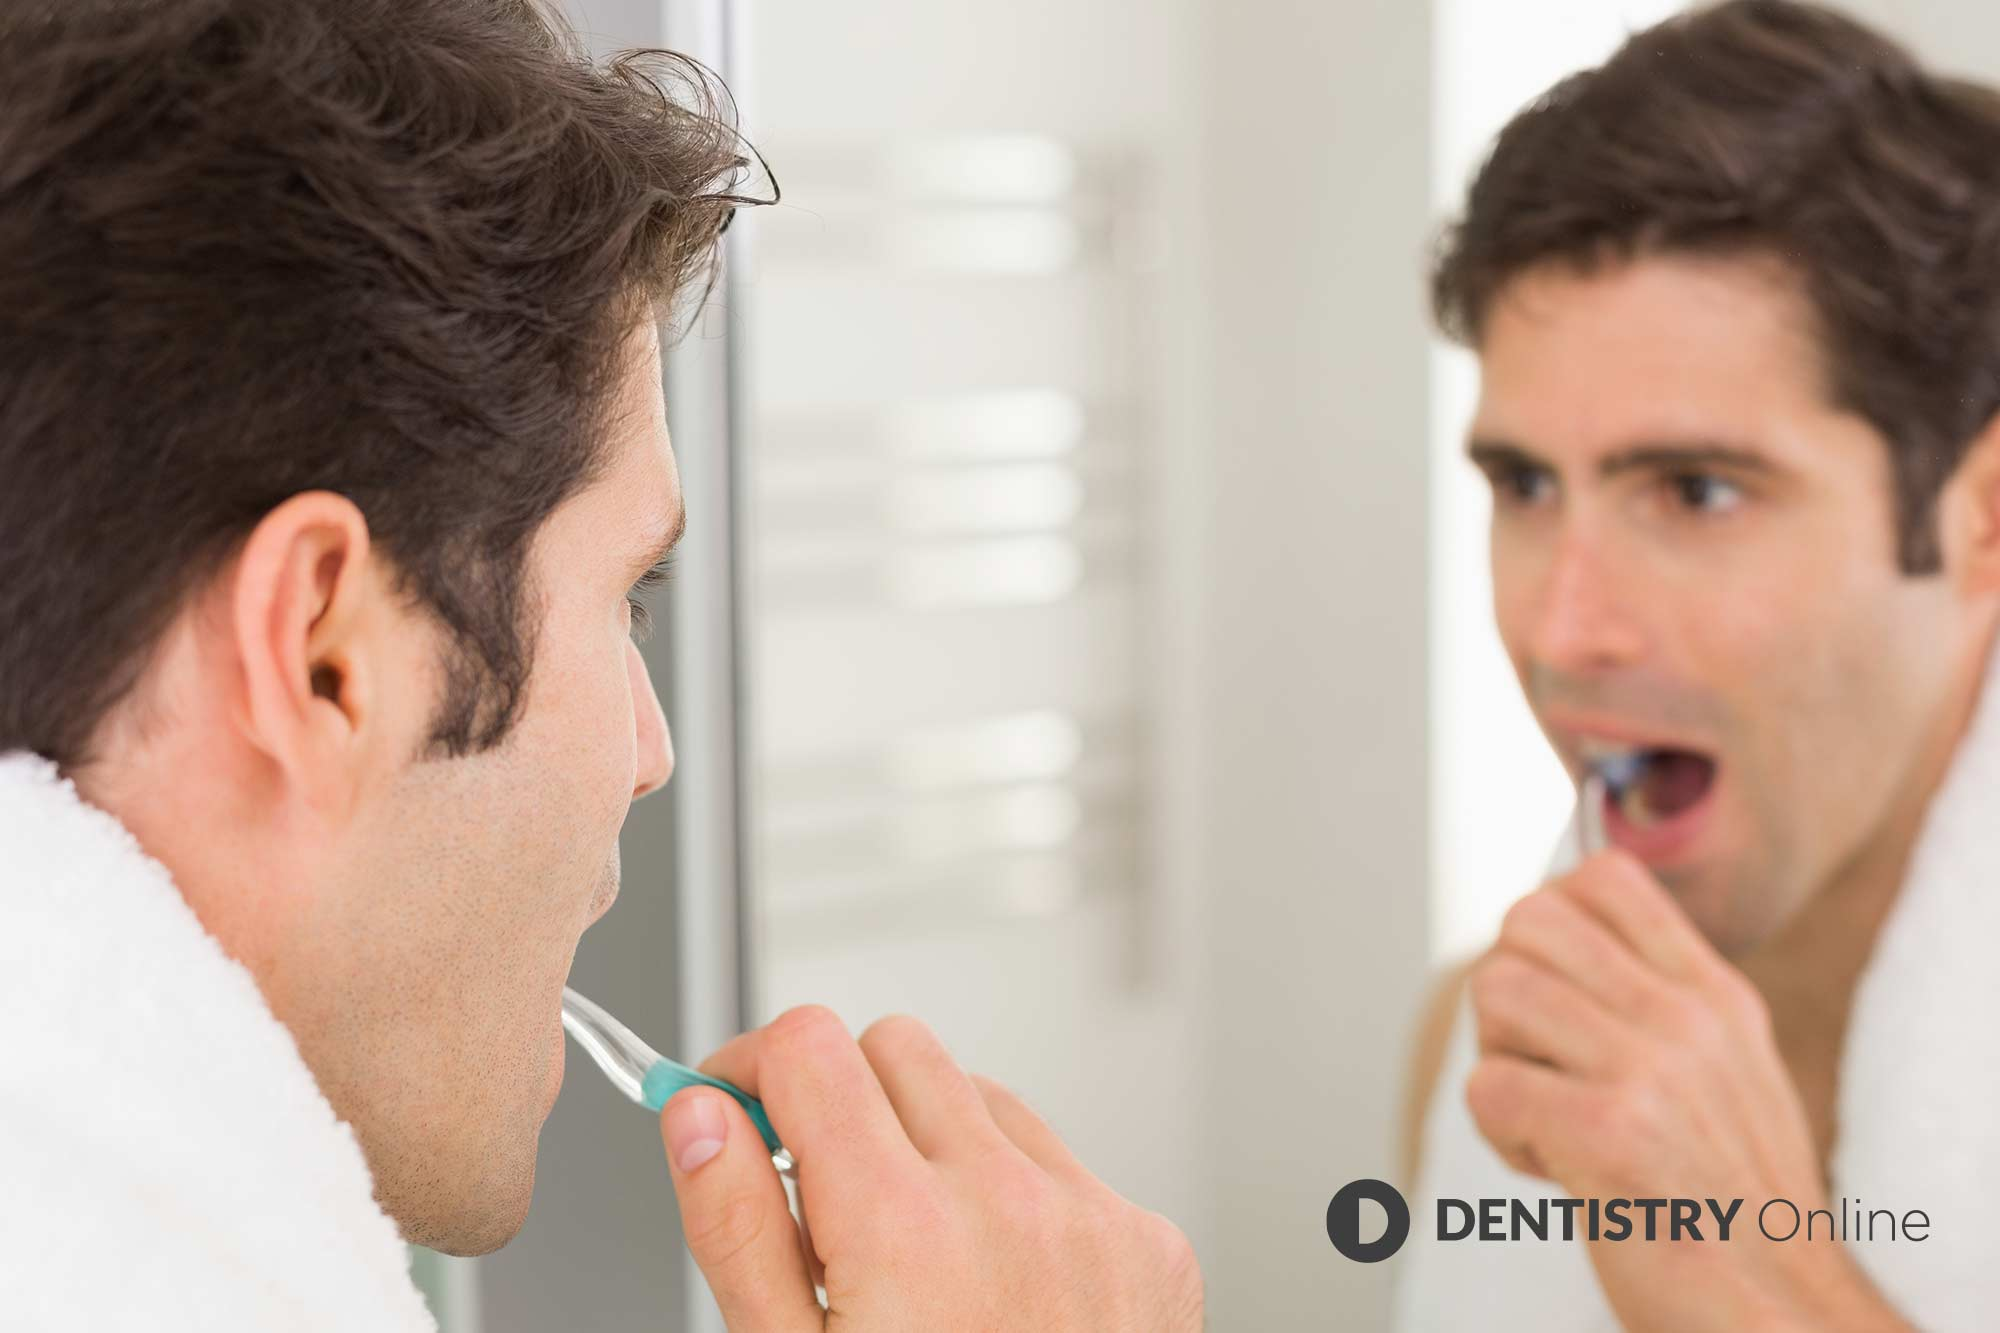 Men are less likely to brush their teeth or floss as frequently as women, it has been revealed